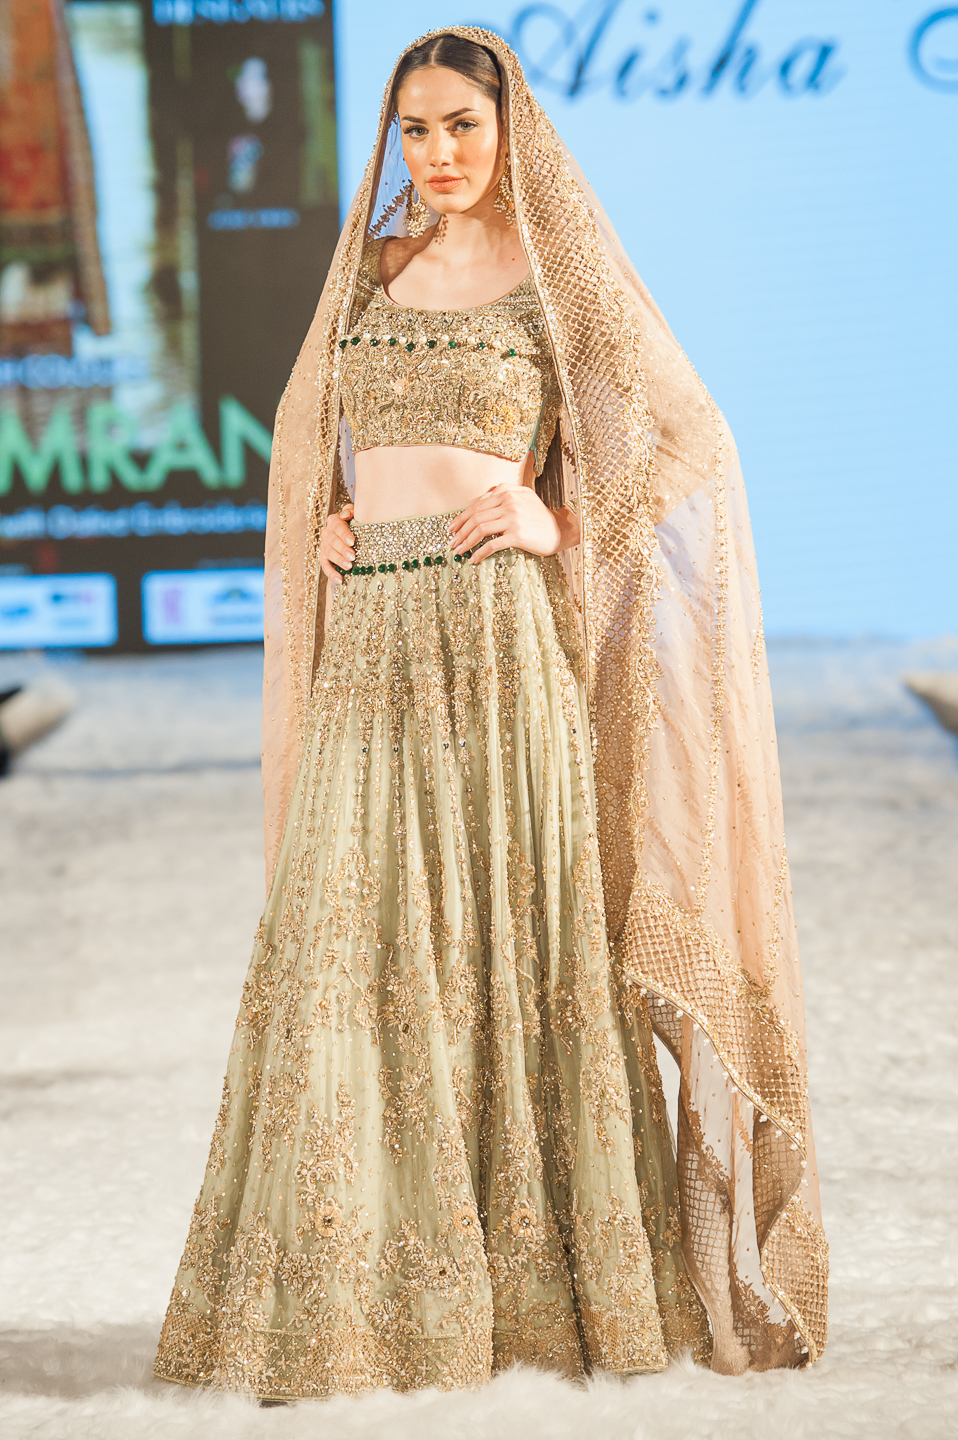 Aisha Imran - Pakistan Fashion Week London - Photography by Shahid Malik